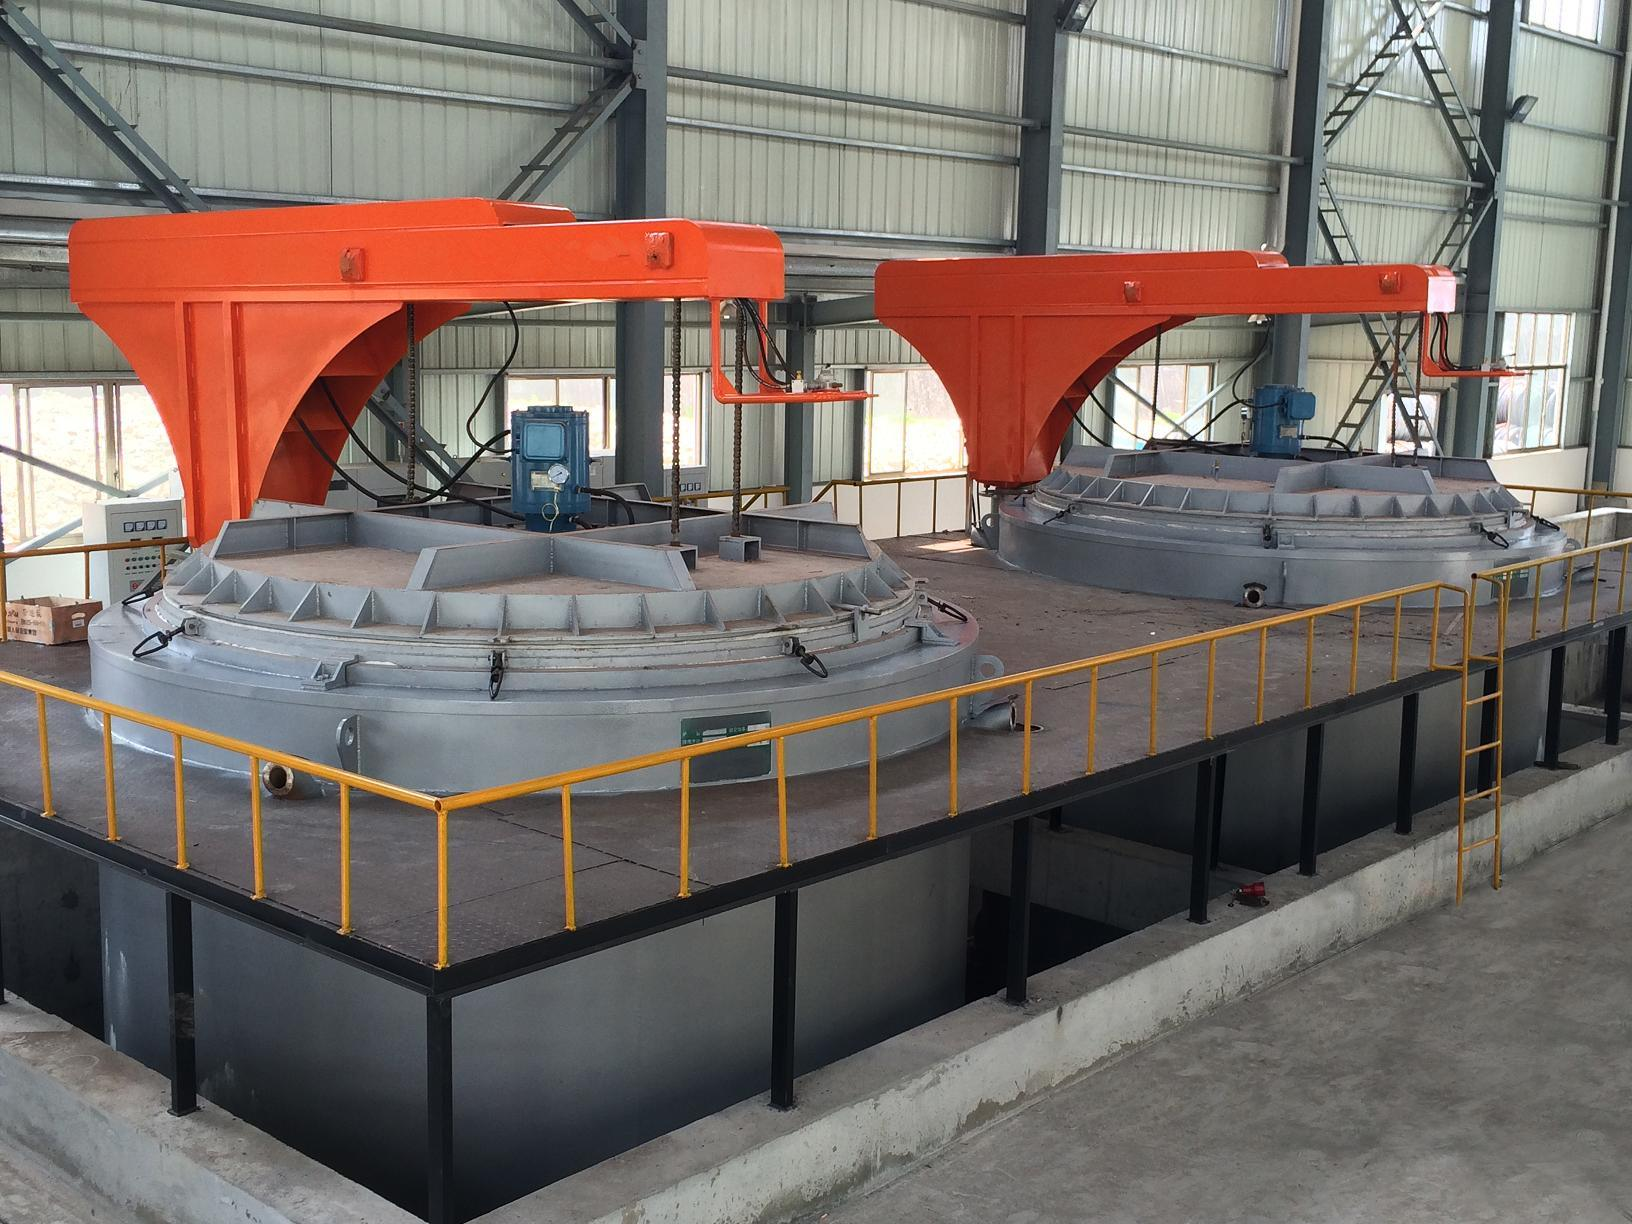 Spherodizing Annealing Oven Furnace for Wire Coils